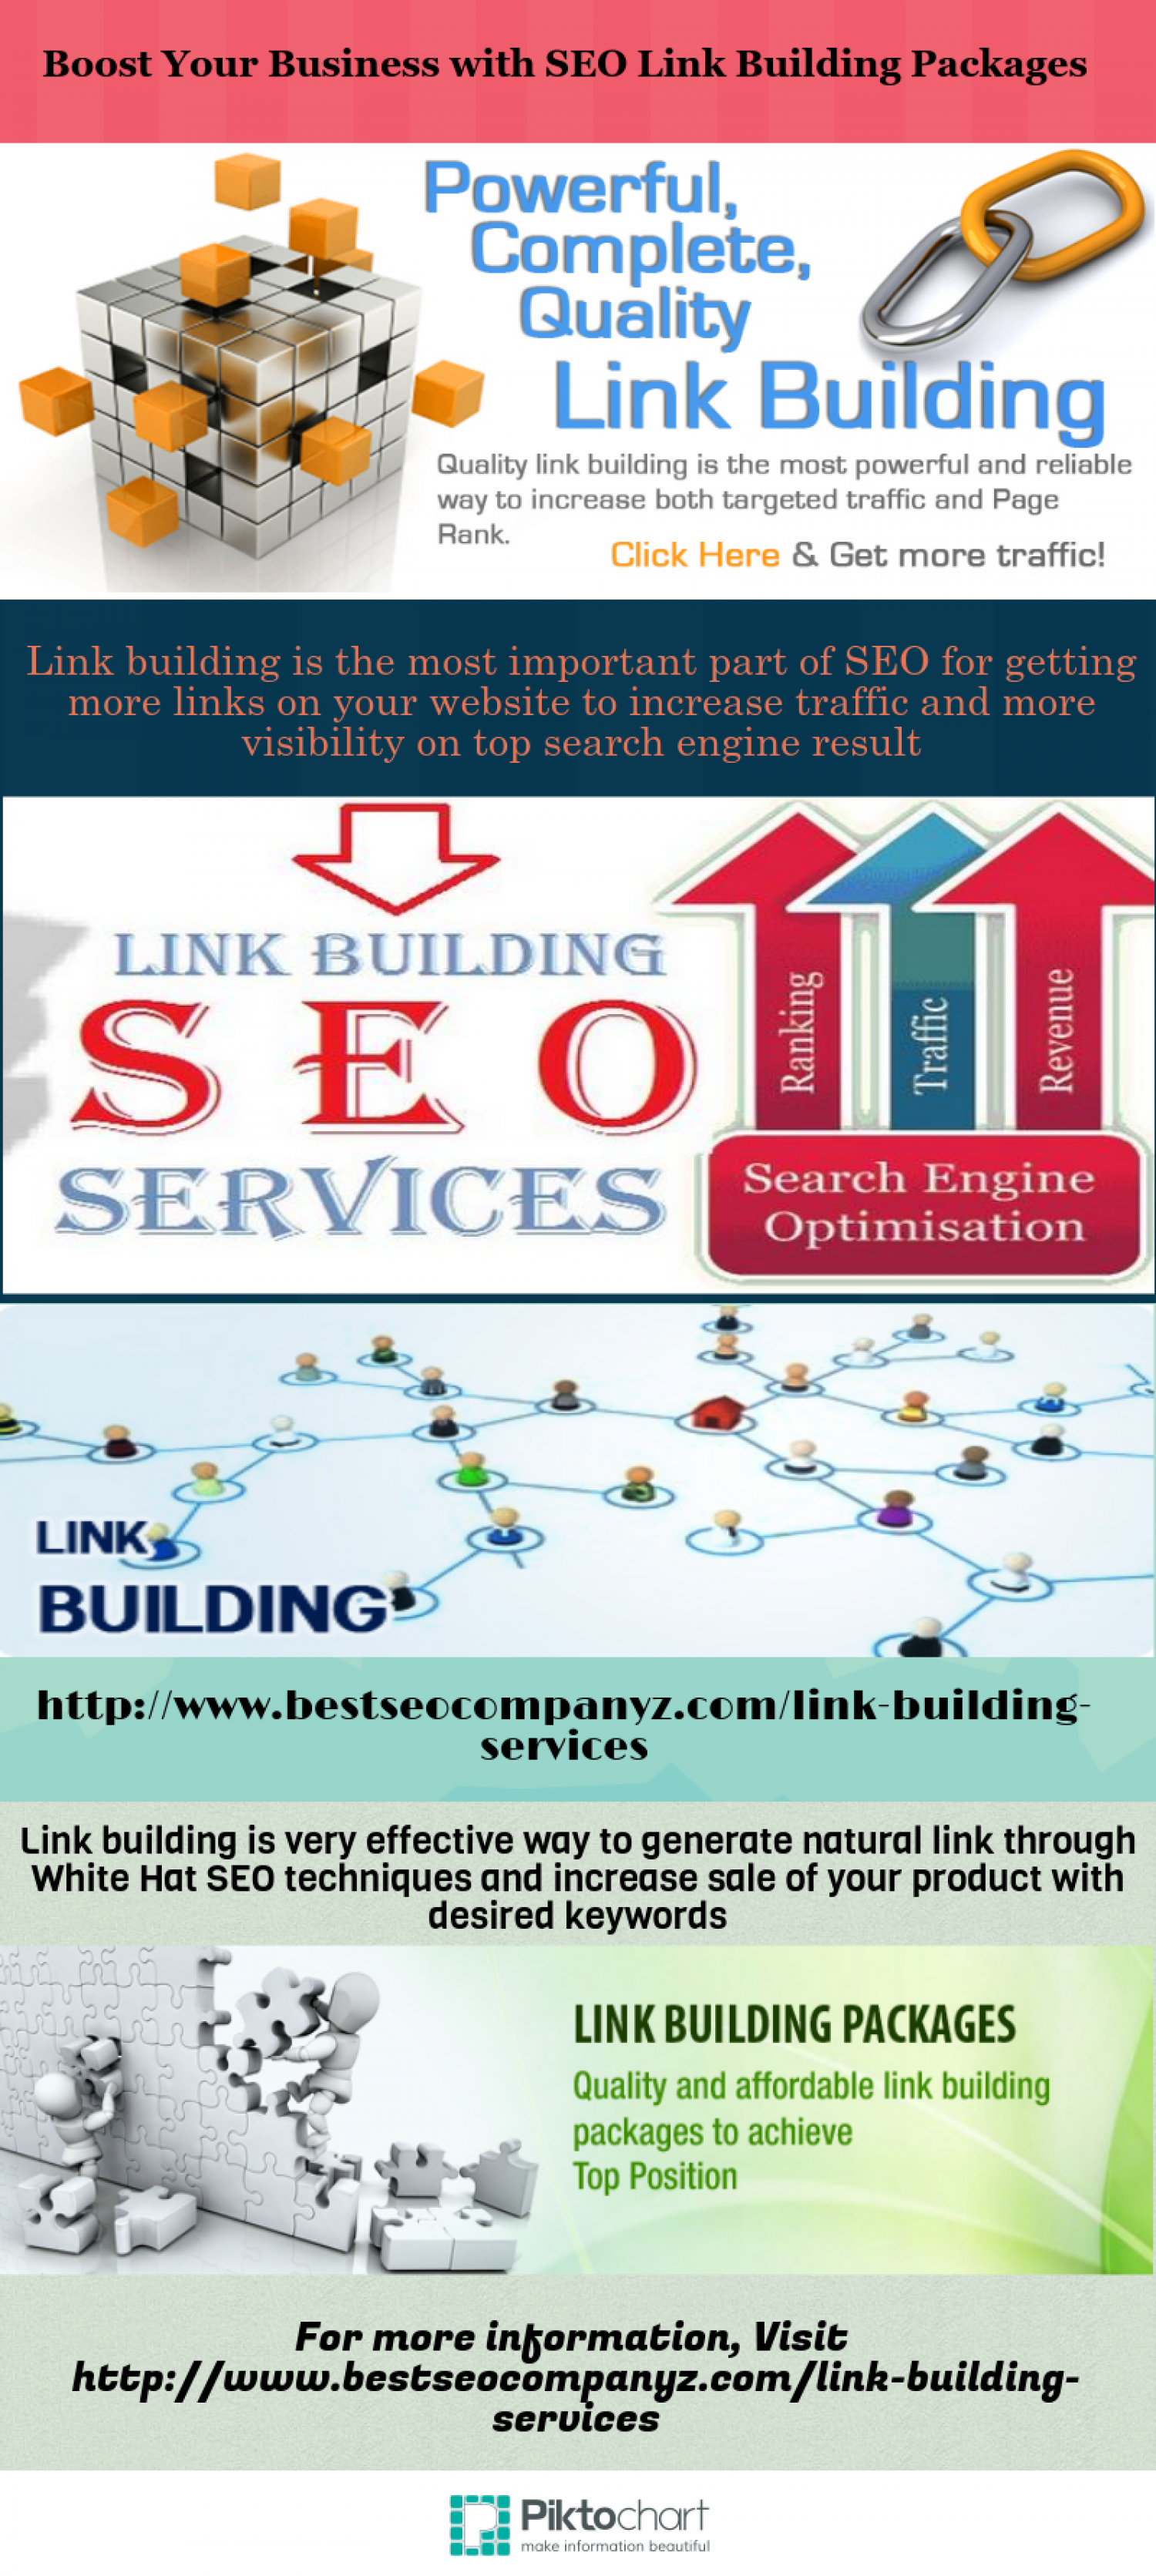 Link Building Packages to Suit your Budget Infographic